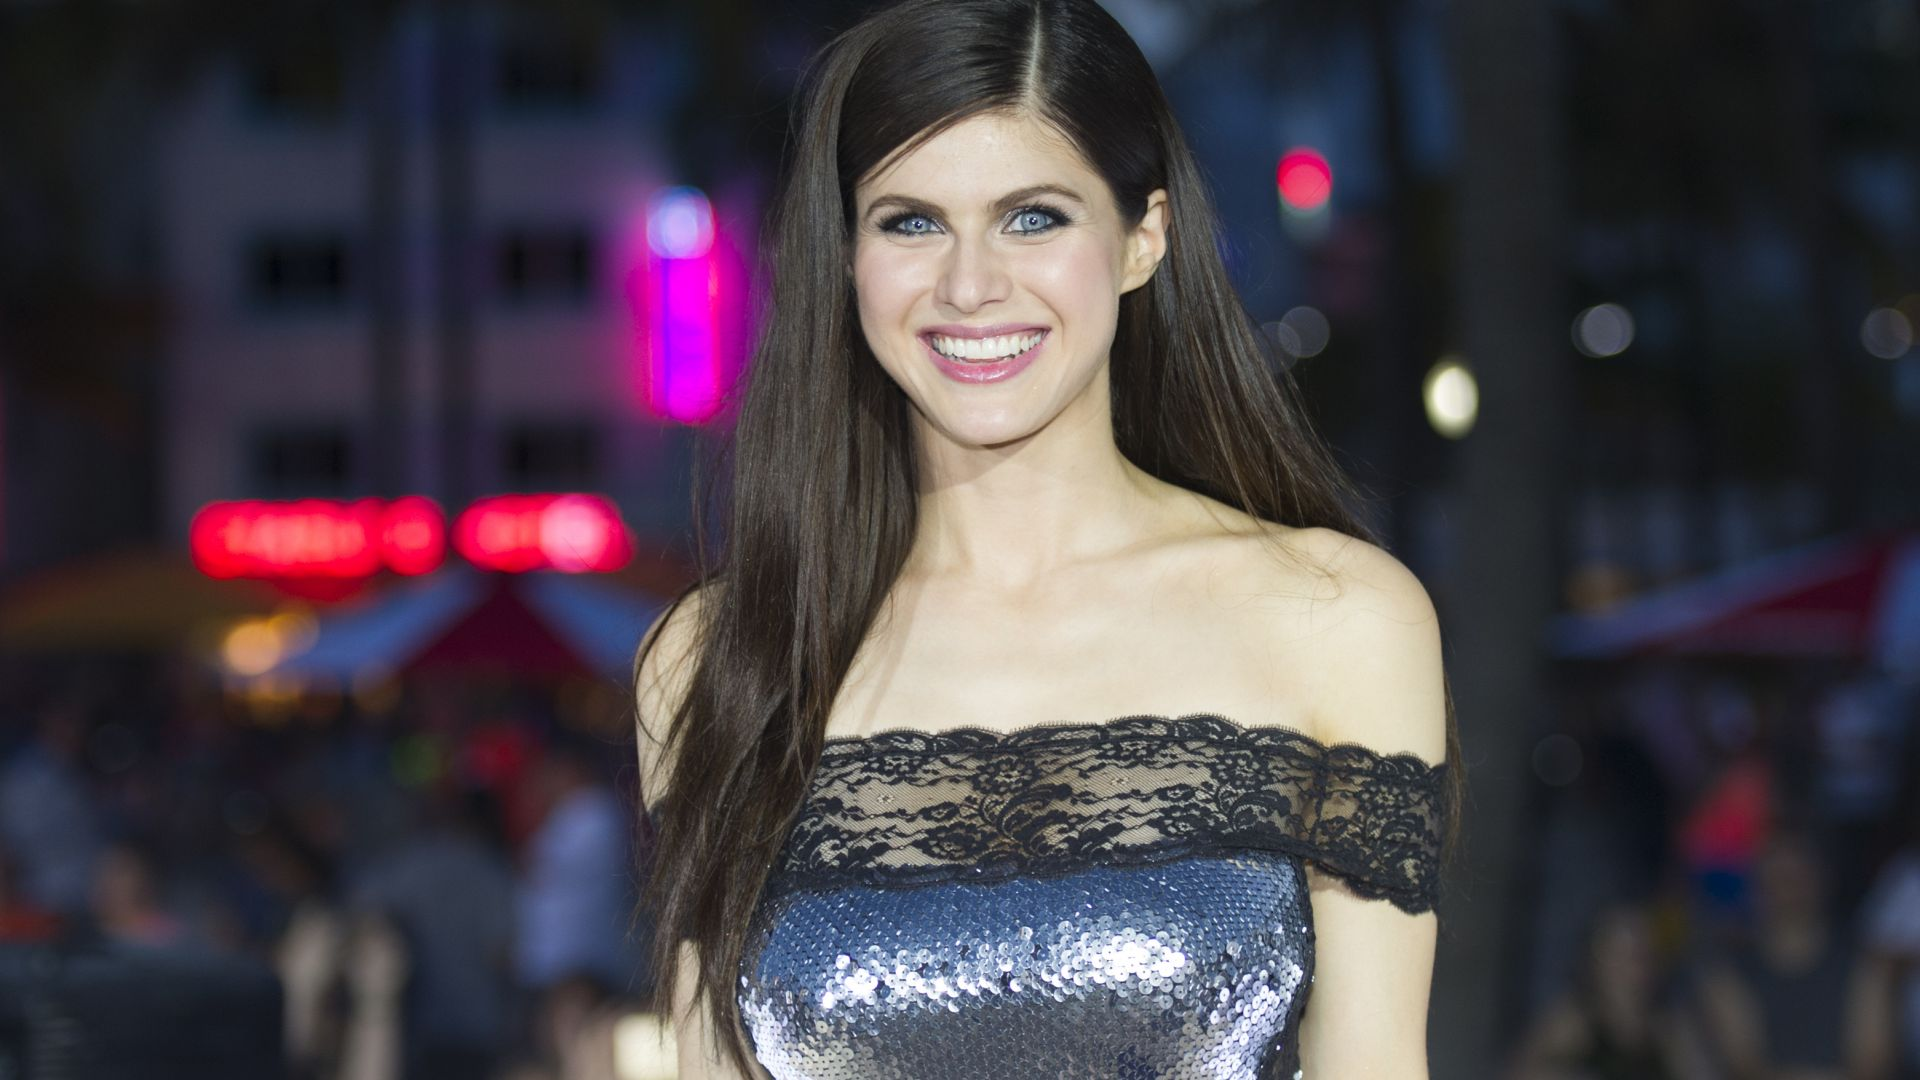 Wallpaper Alexandra Daddario, smile, beautiful, 4k, 2017